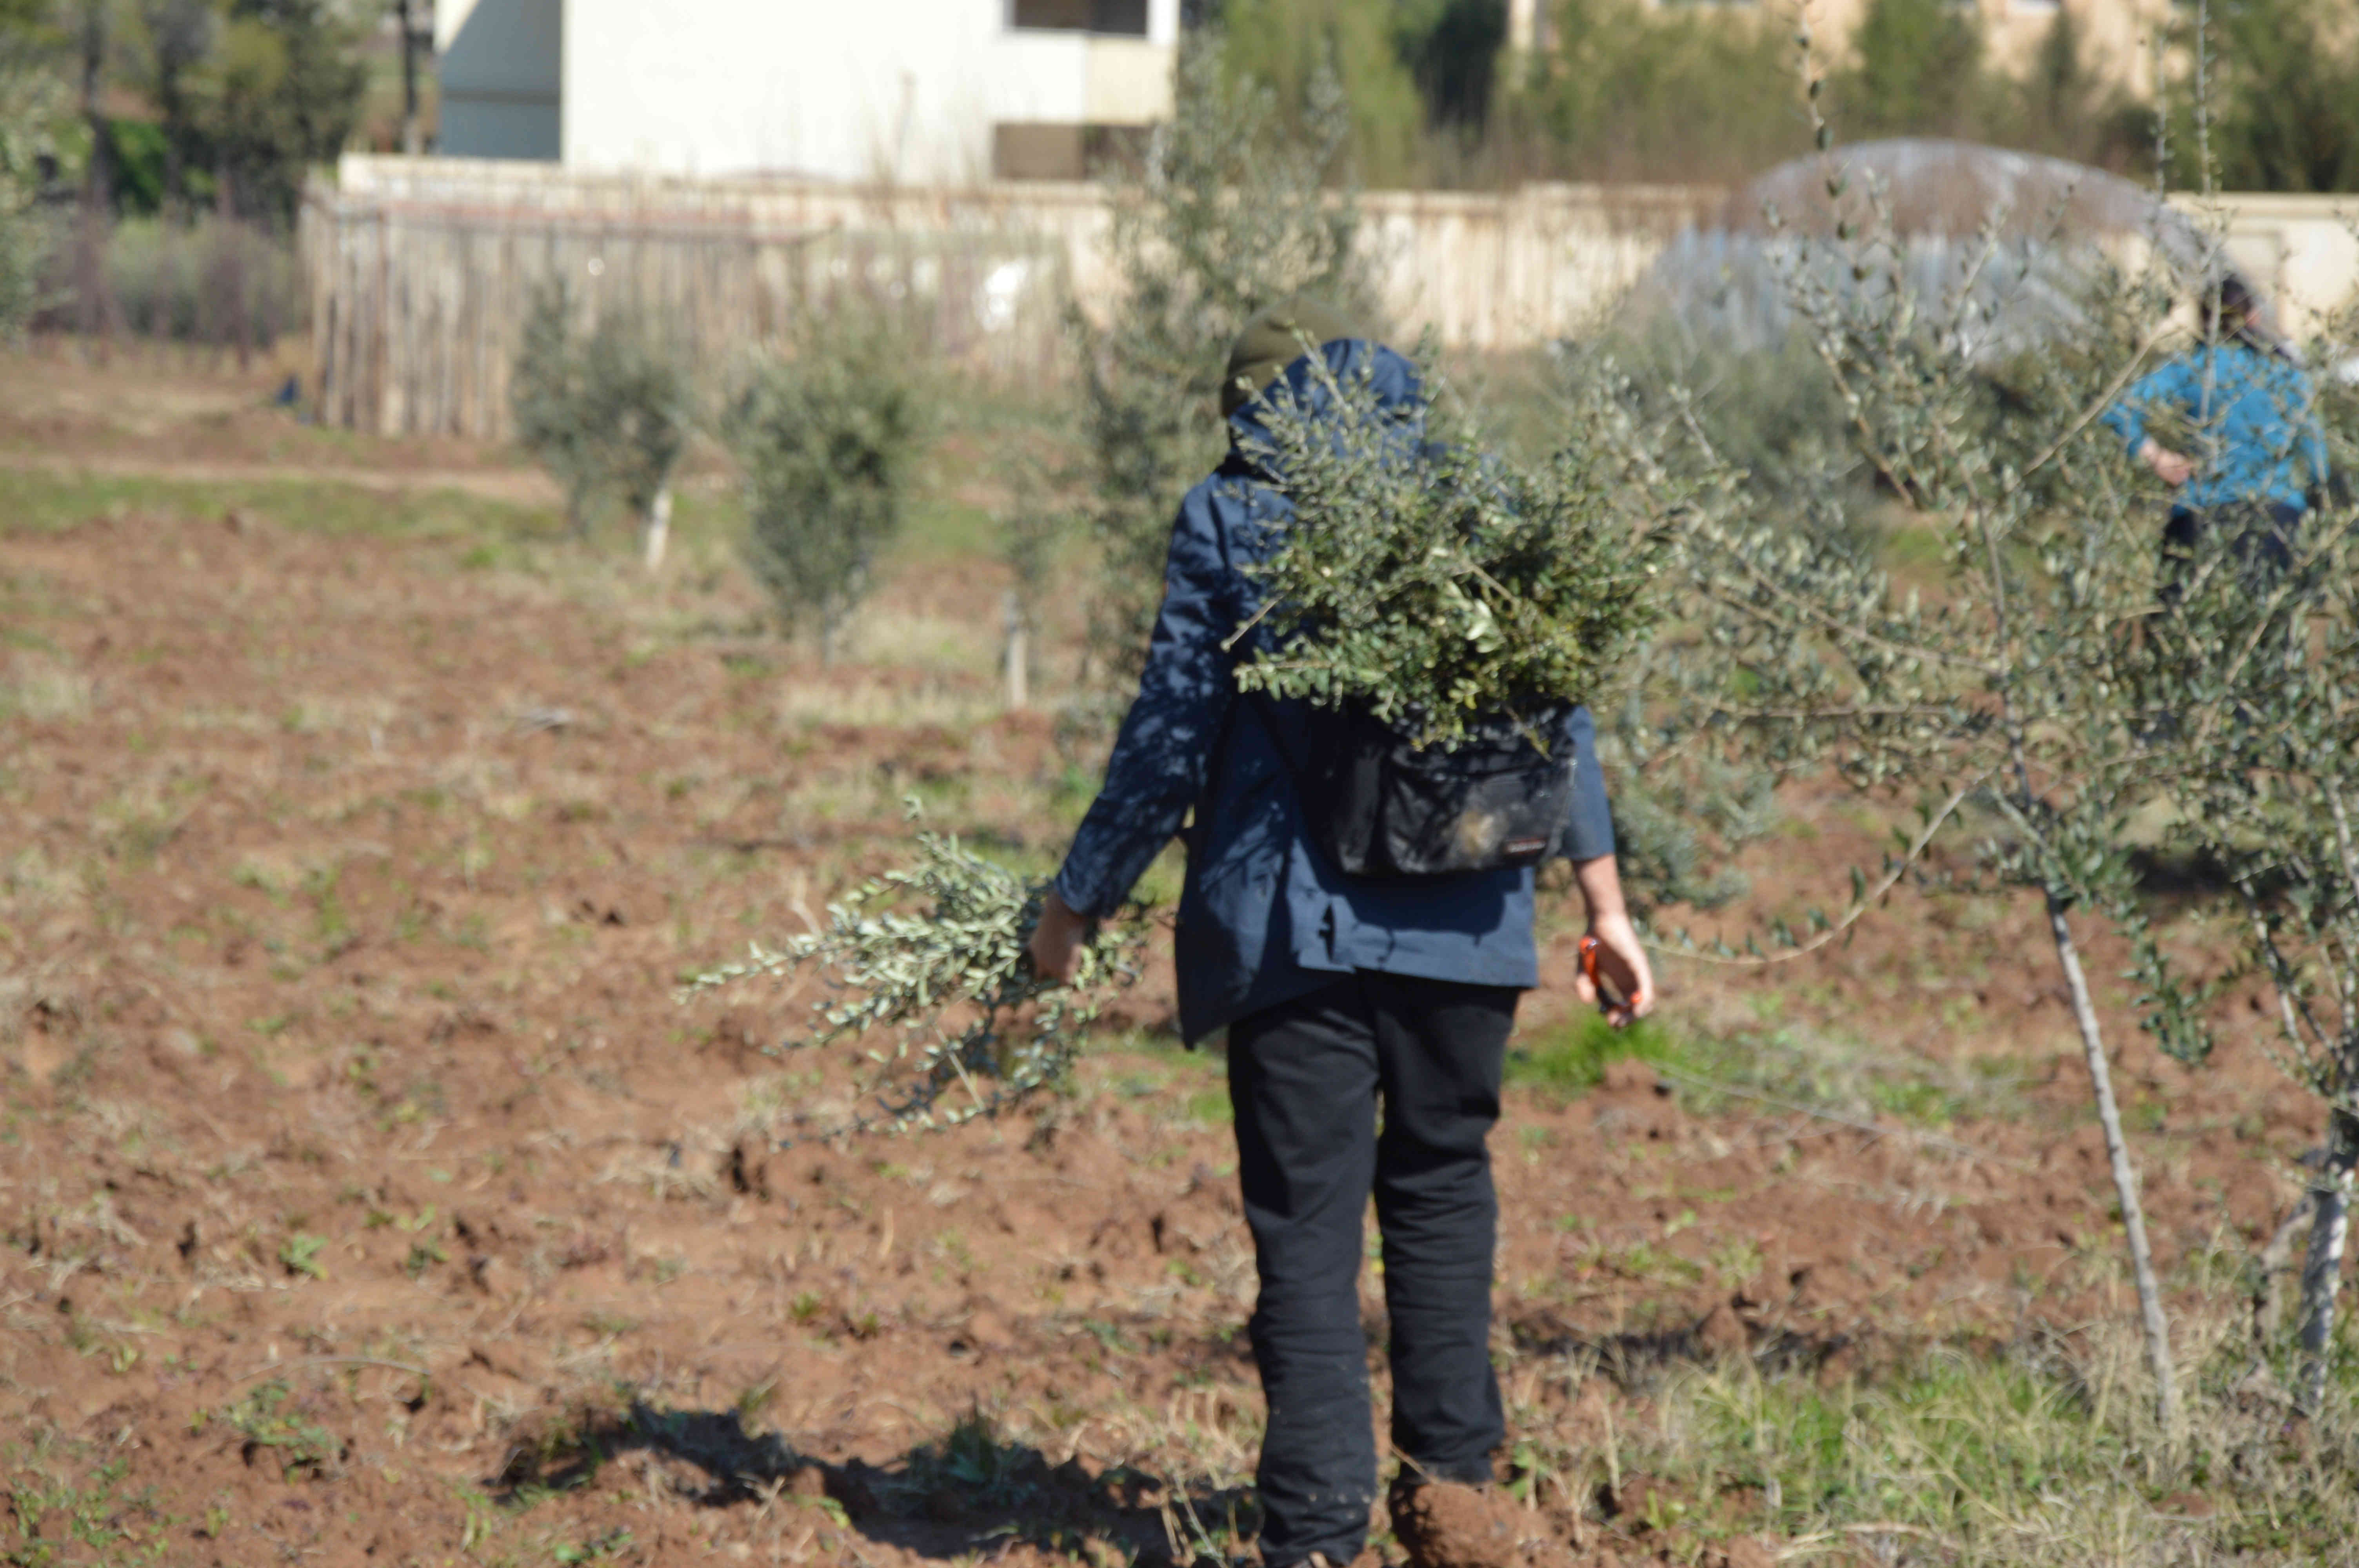 What can we do as ecologists to support the resistance in northeast Syria?